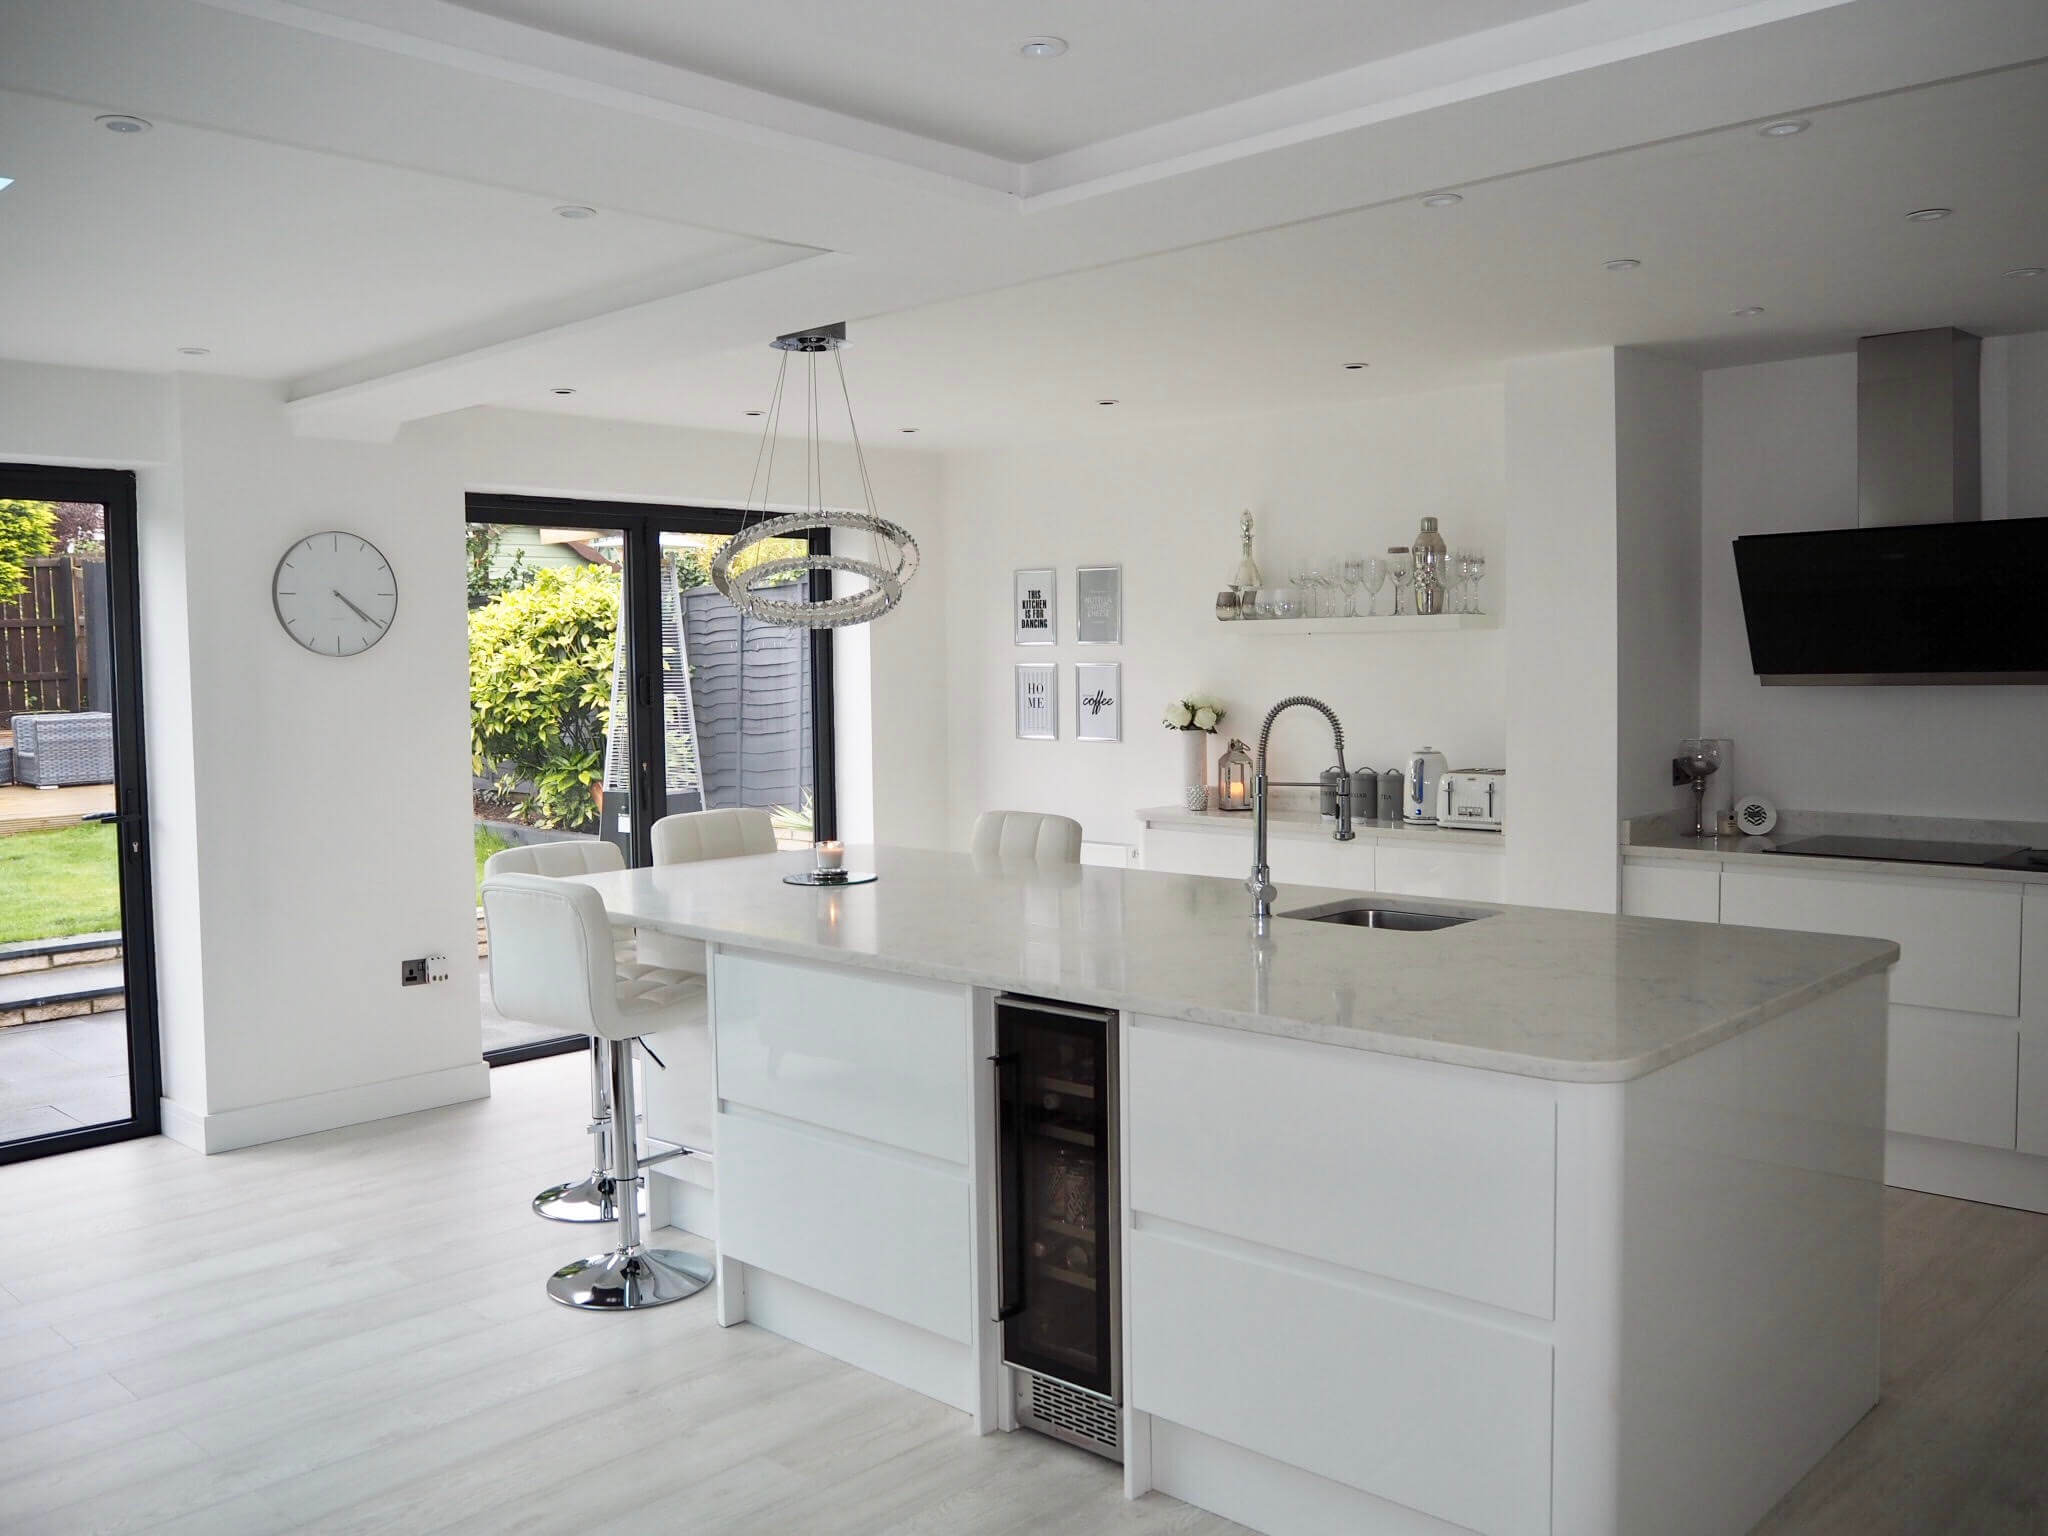 Want to see a home tour for a contemporary open plan kitchen diner extension? Photo credit: Rachael Casey